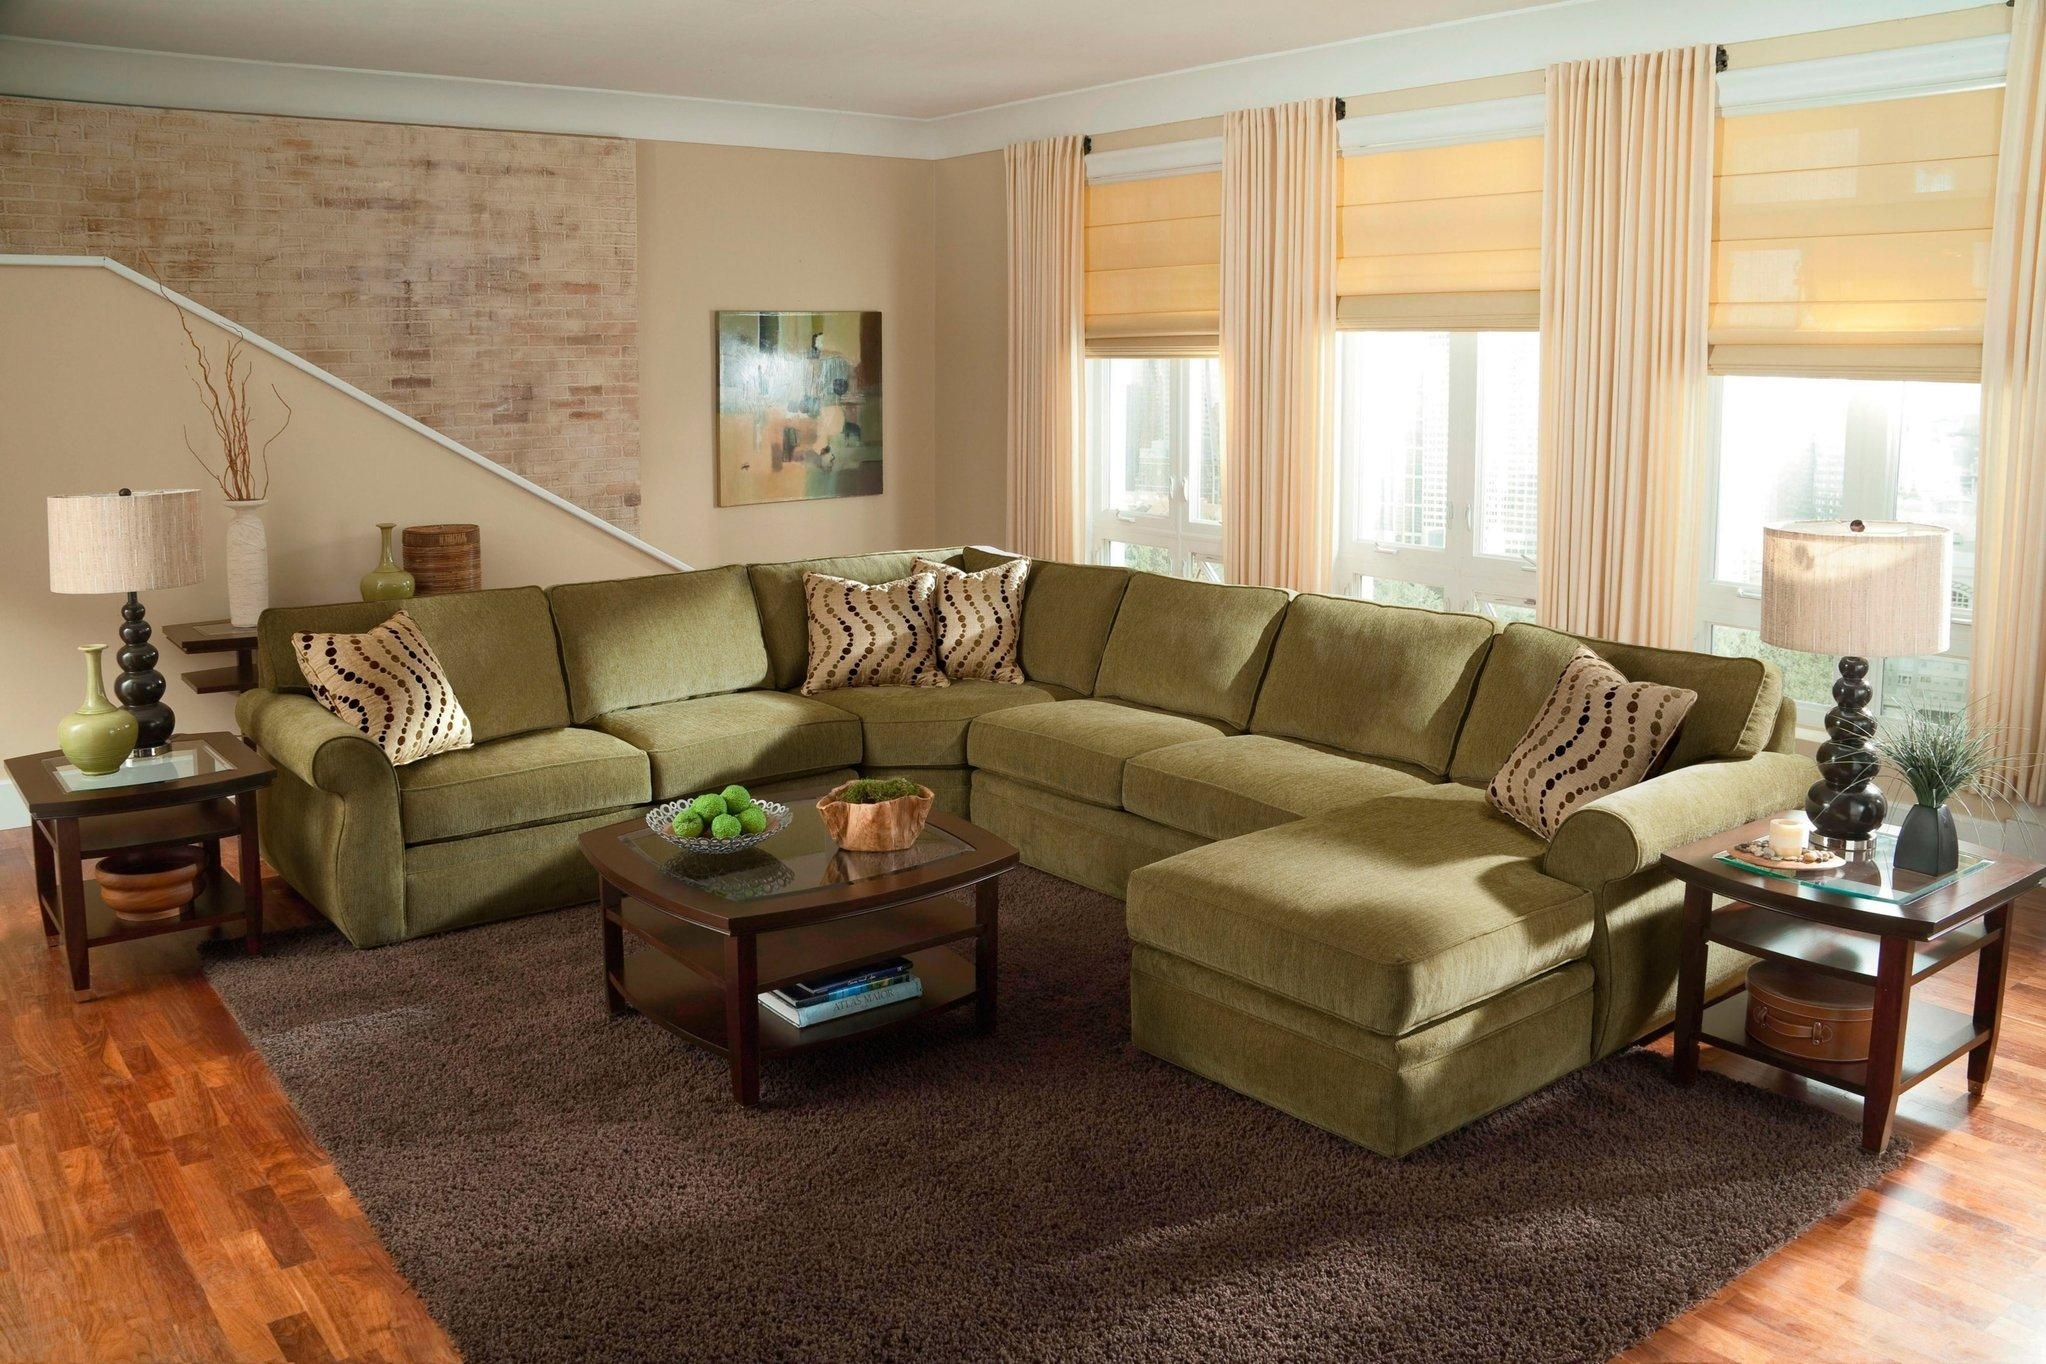 Interior: Luxury Oversized Sectional Sofa For Awesome Living Room Within Large Sofa Sectionals (View 10 of 20)